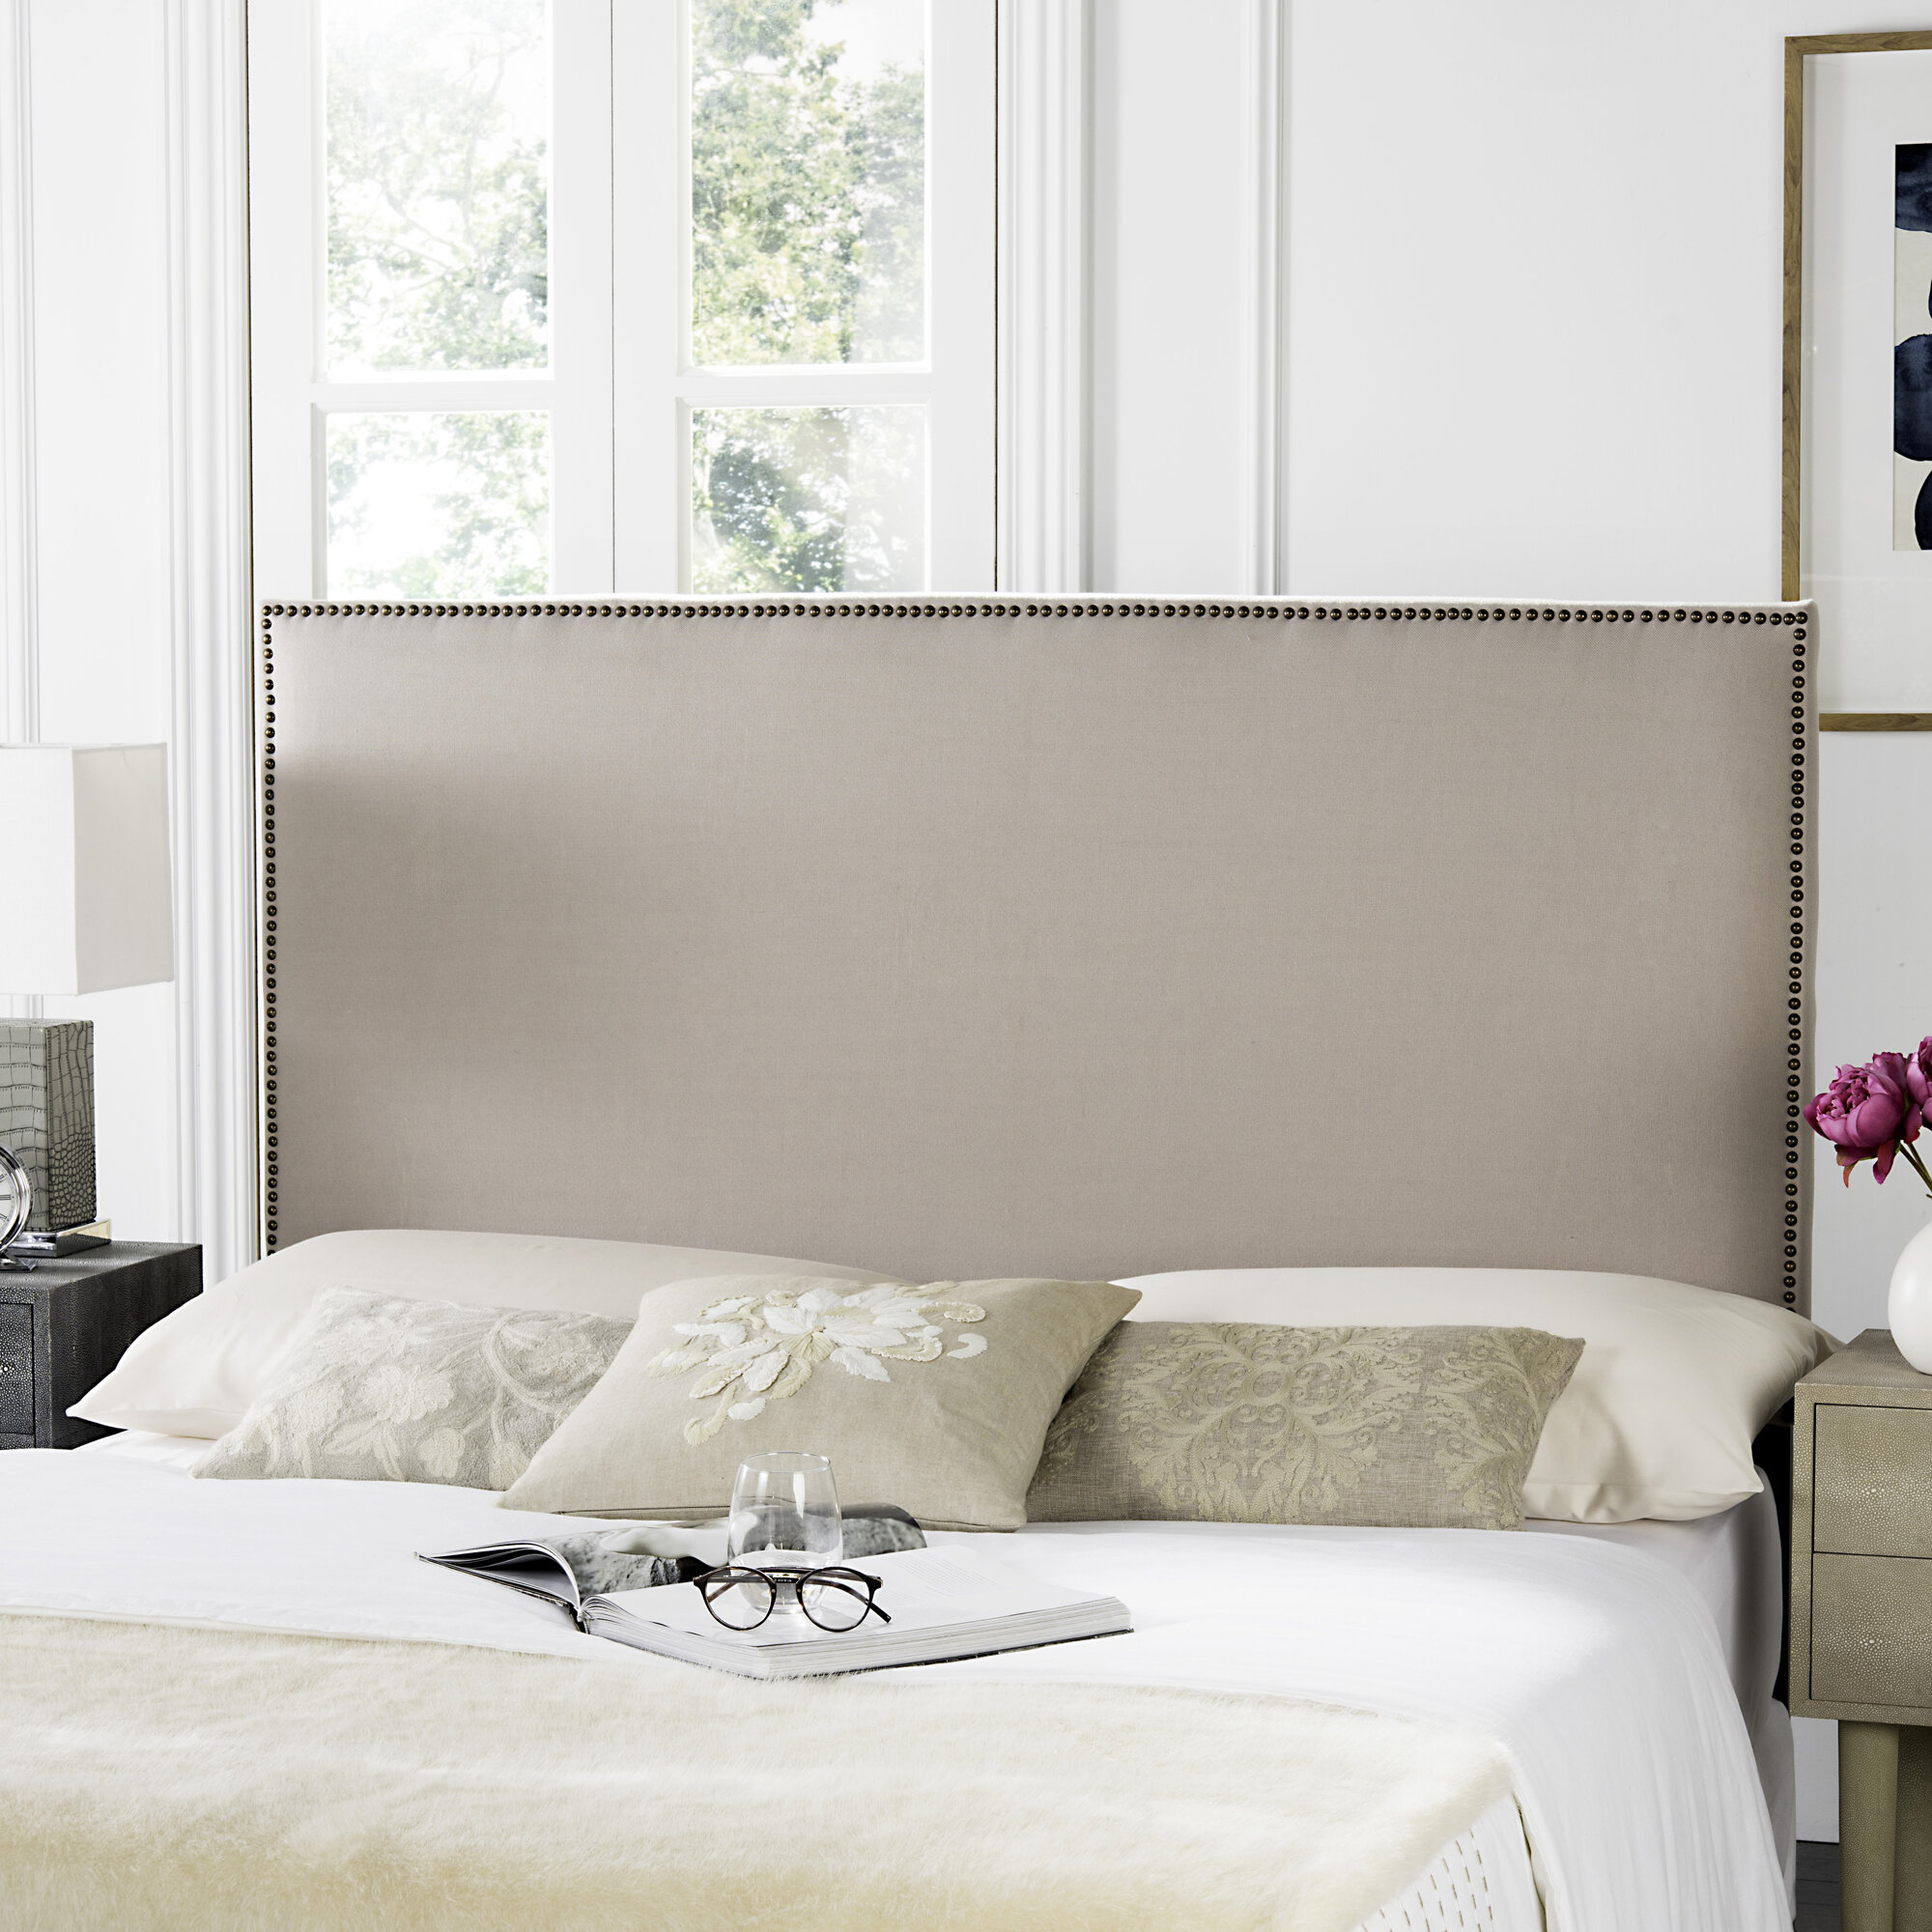 Wingback upholstered headboard Double Bed Cushion House Of Hampton Farringdon Upholstered Wingback Headboard Reviews Wayfair Wayfair House Of Hampton Farringdon Upholstered Wingback Headboard Reviews